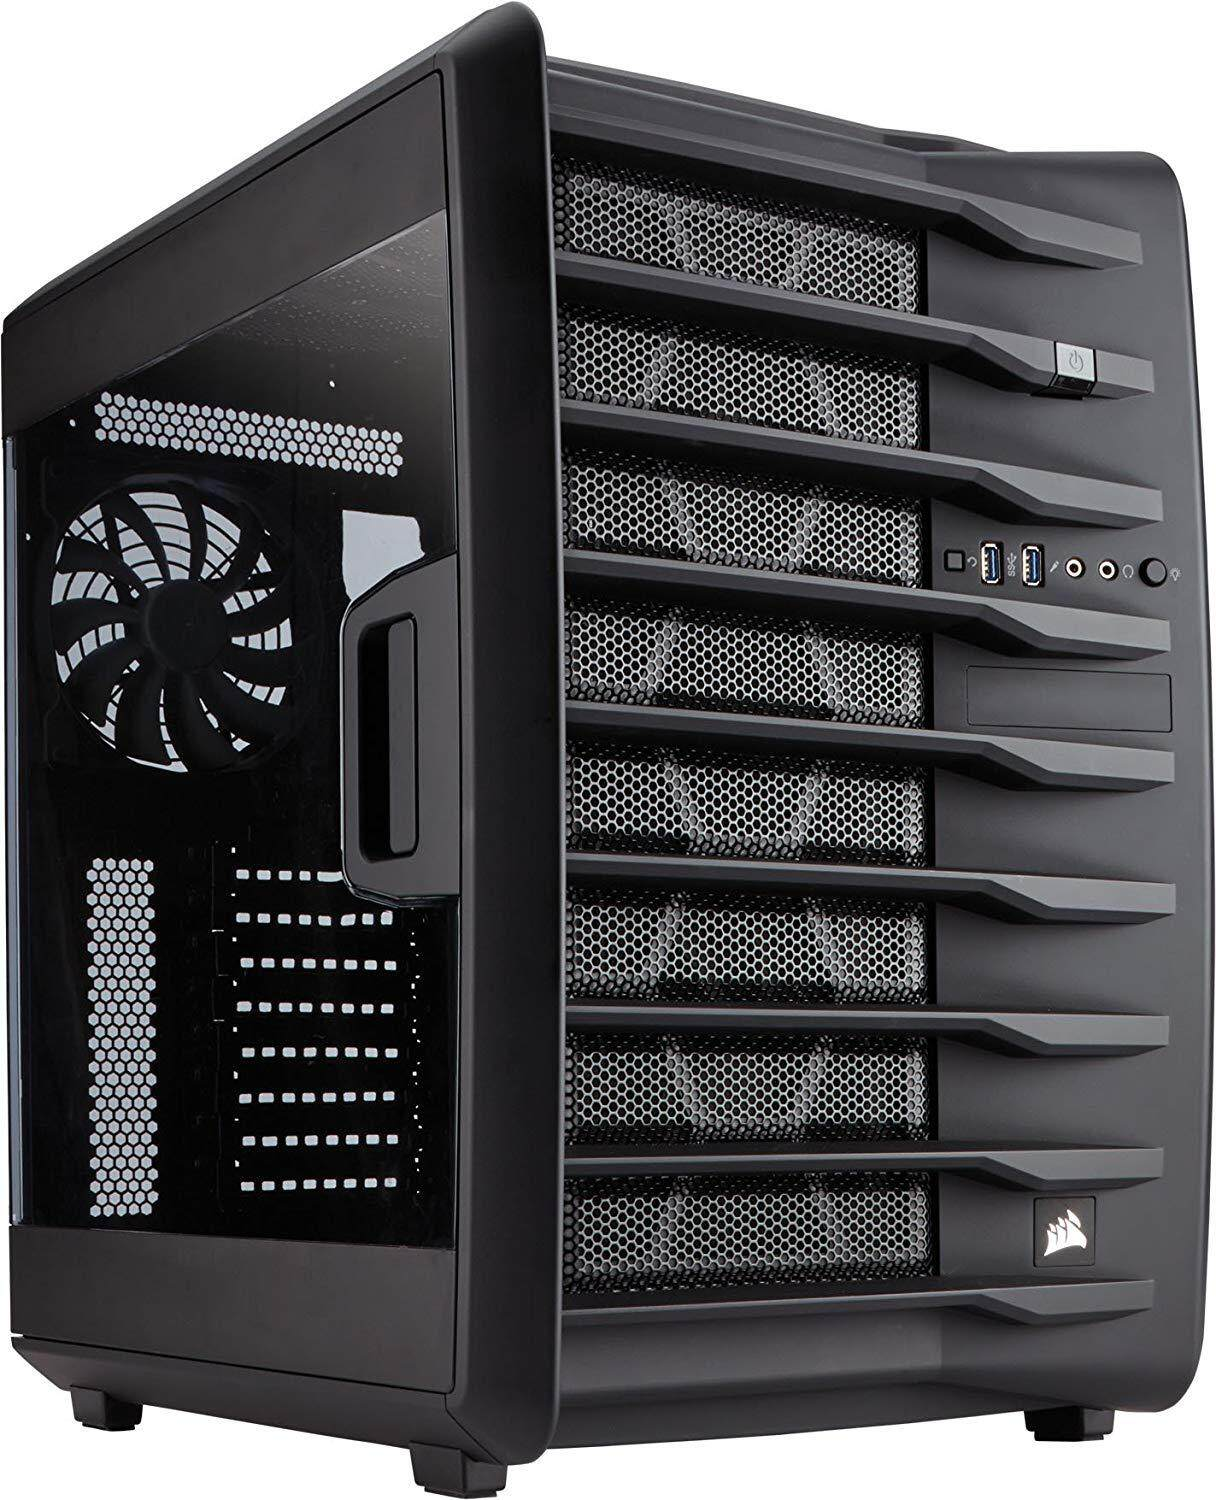 Corsair Carbide Air 740 Arctic High Airflow ATX Cube Case Malaysia